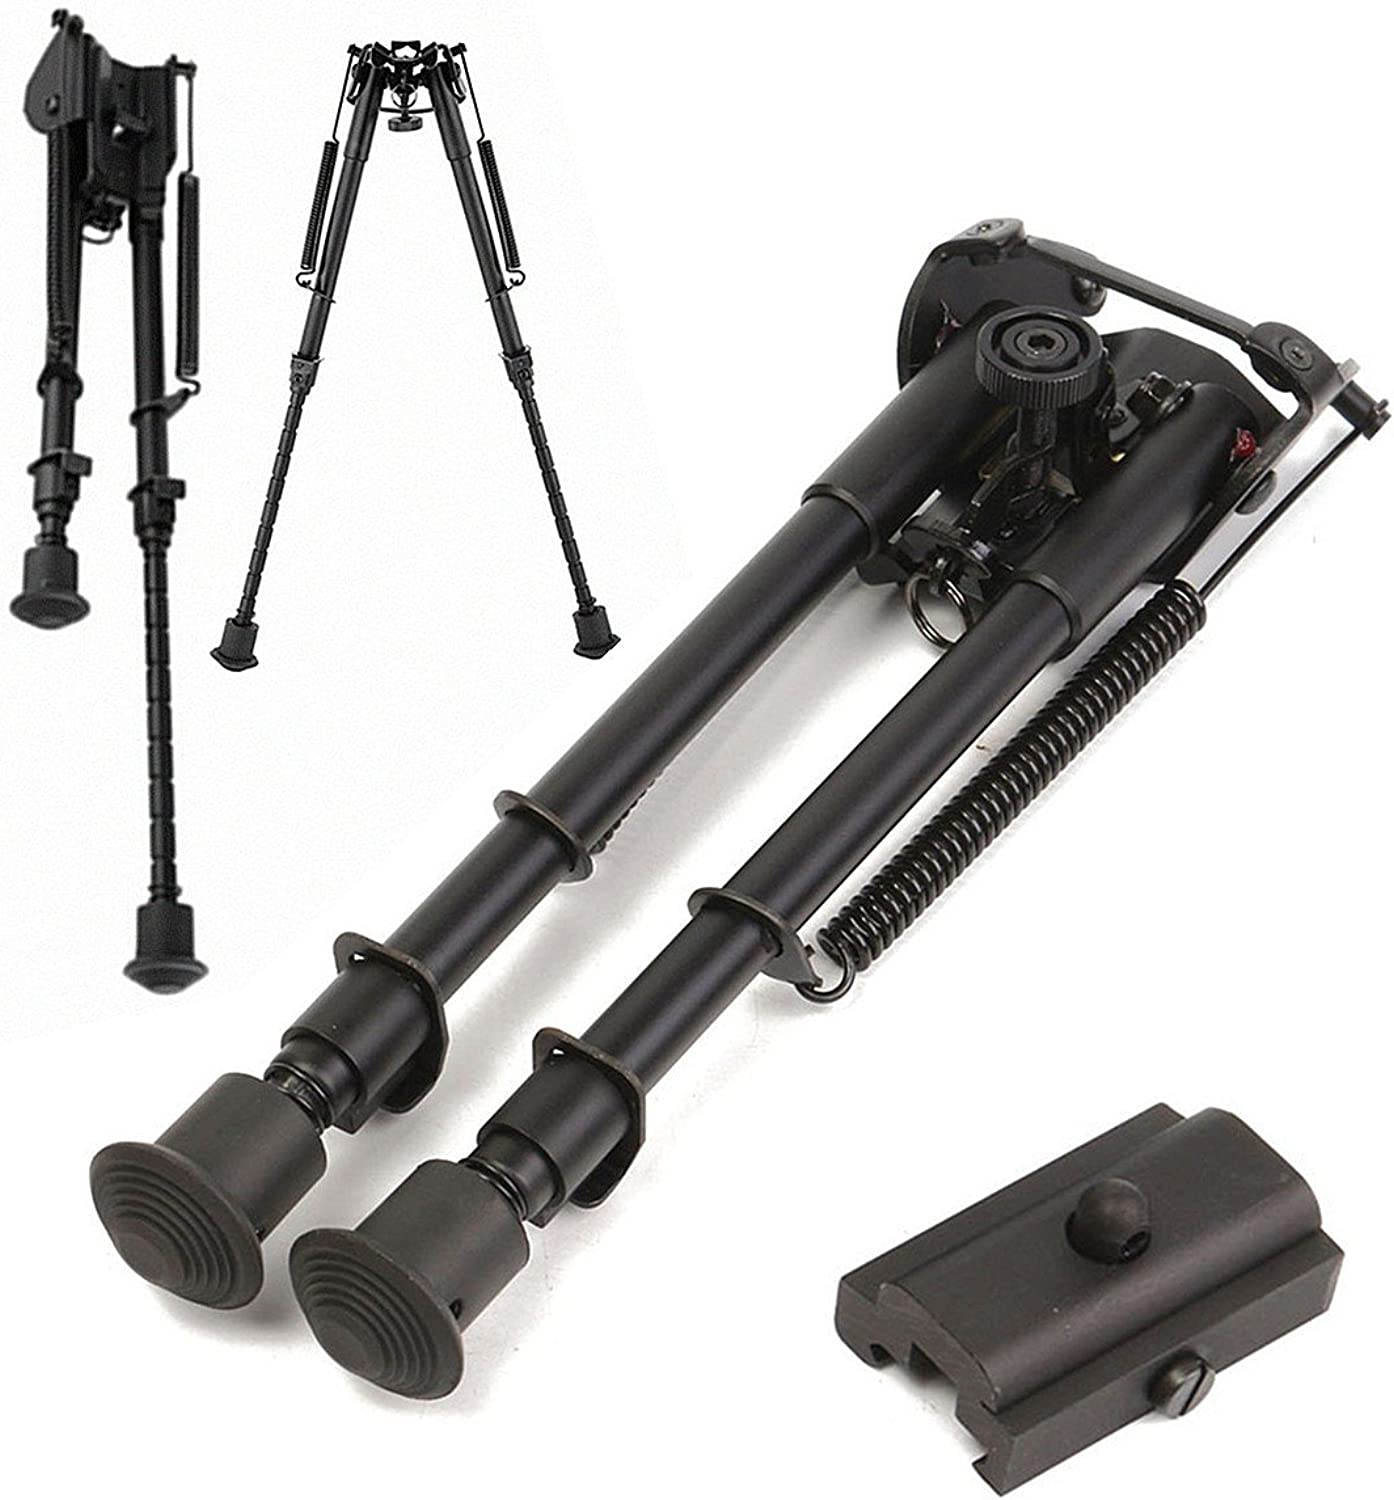 HITSAN 20mm Adjustable Stud Spring 9 inch Bipod Picatinny Rail with Standard Rail Mount One Piece